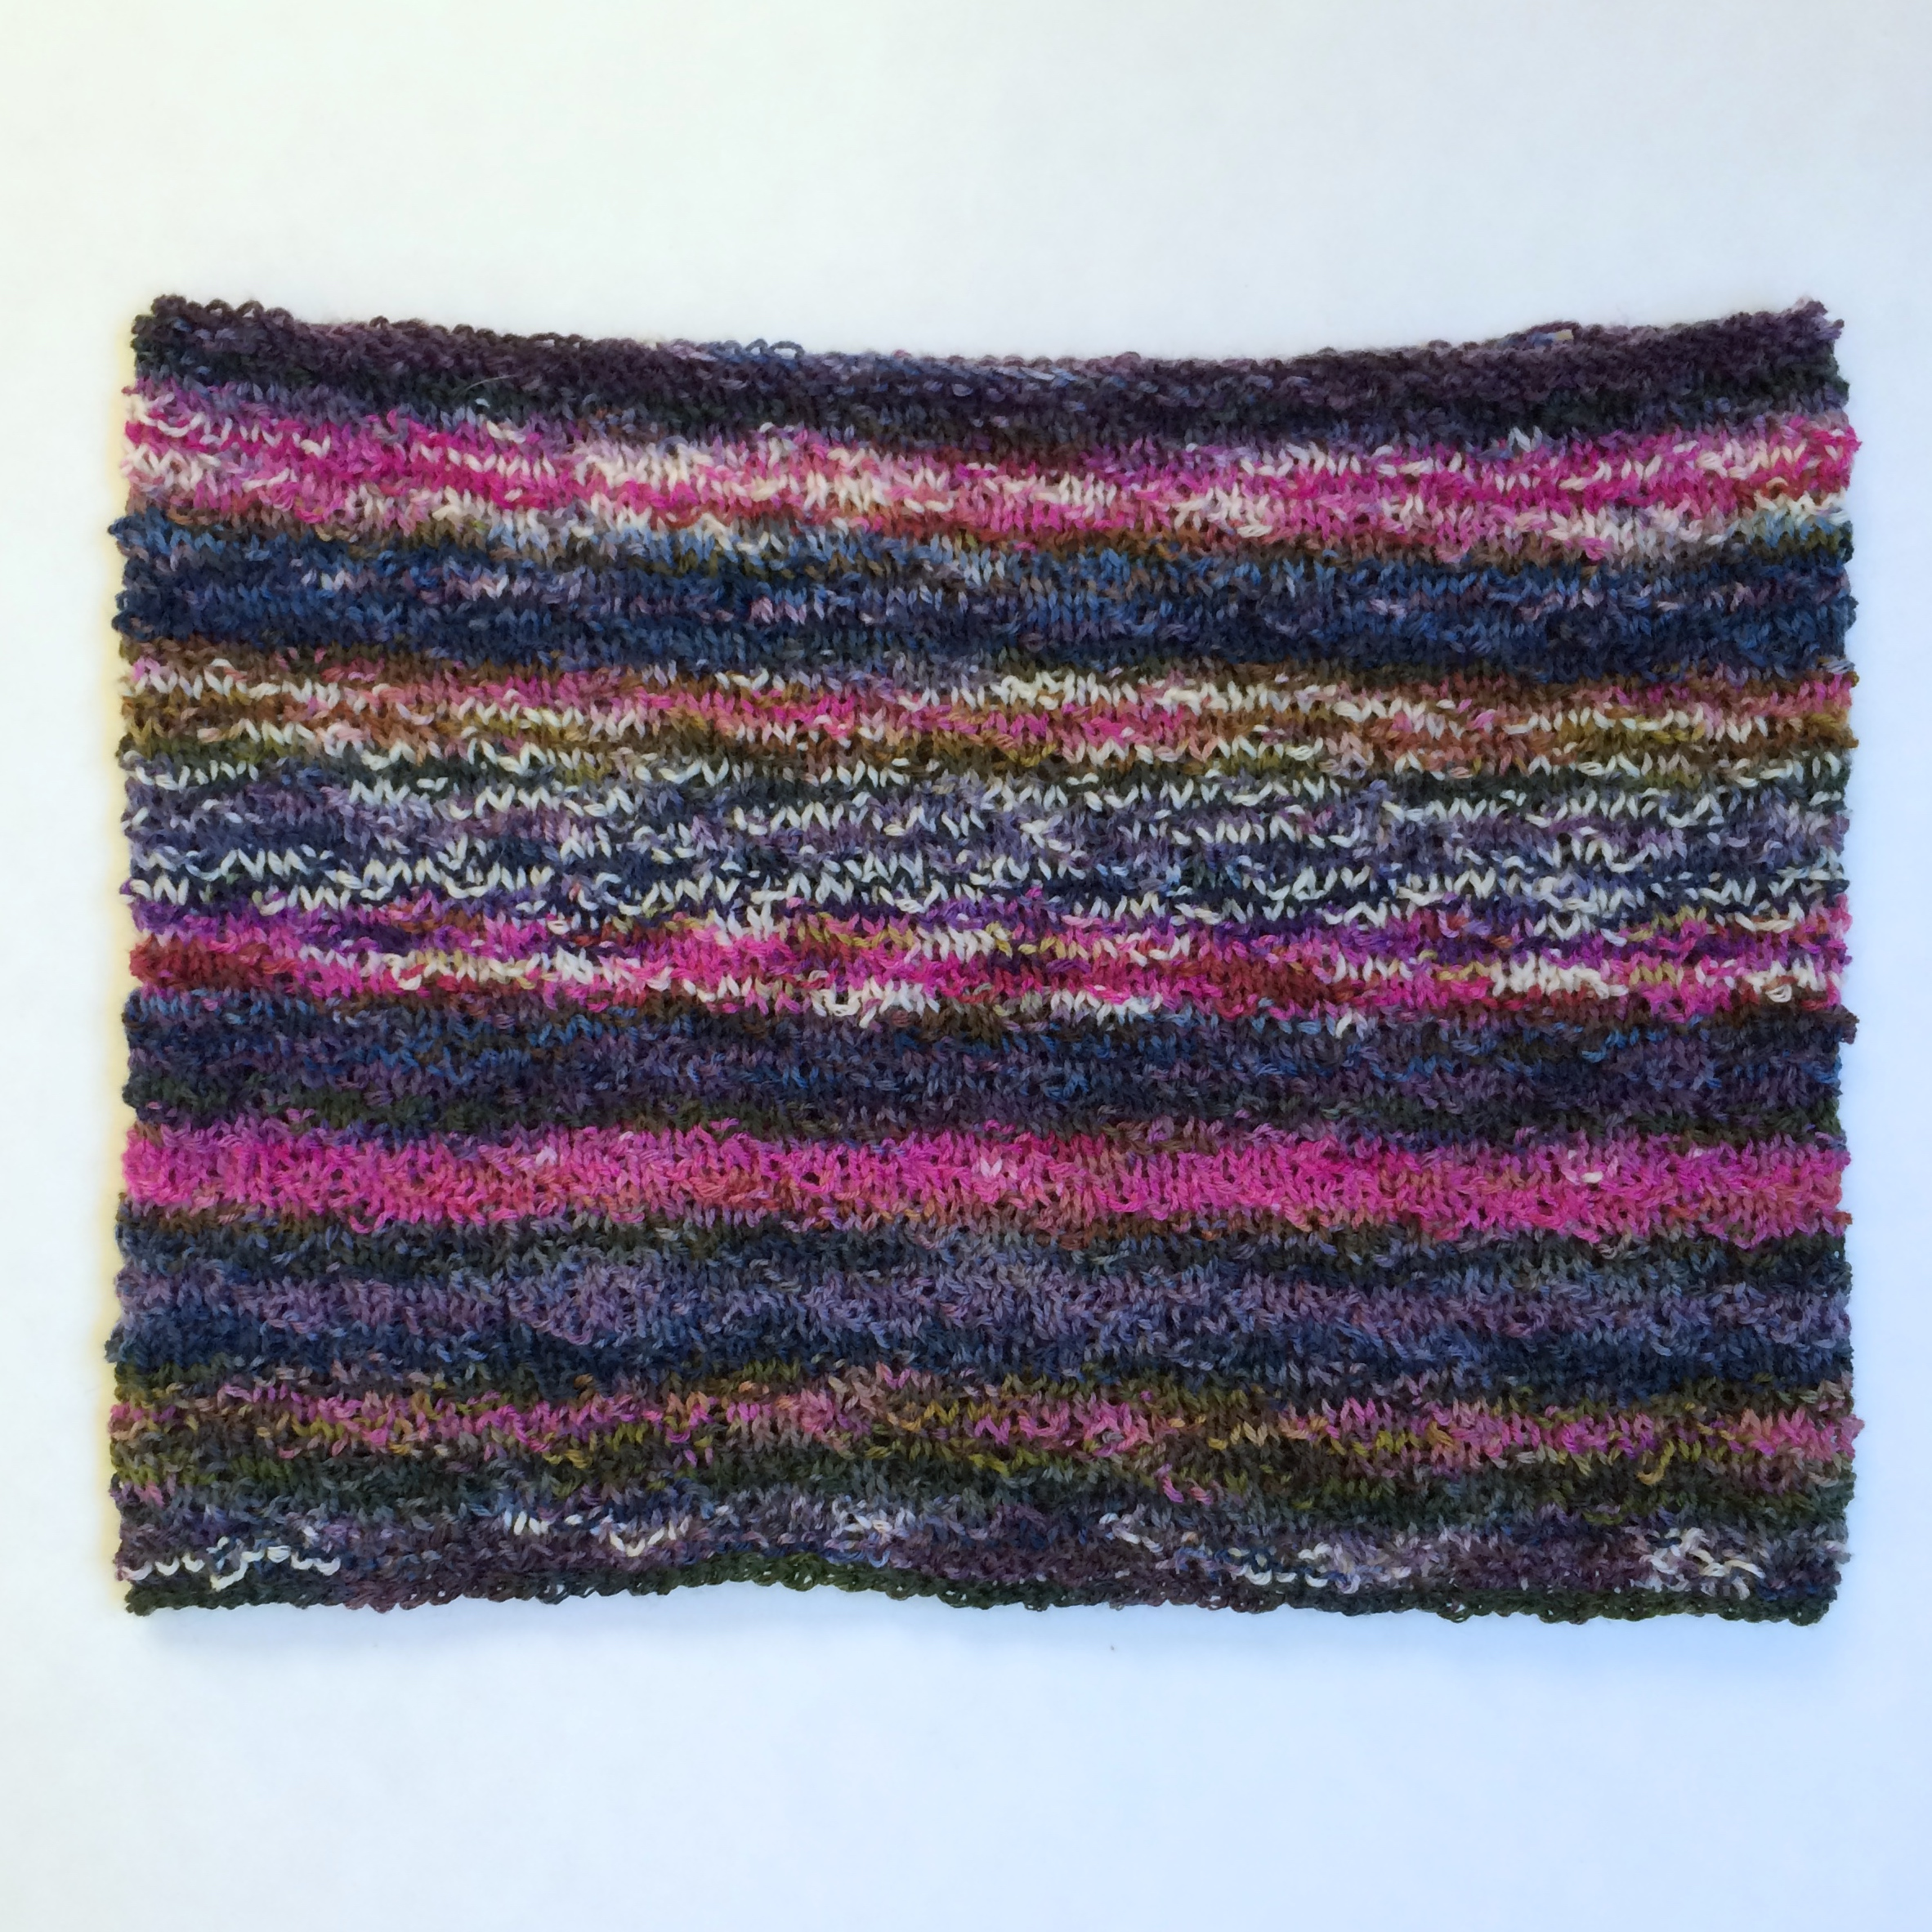 Wunder Cowl, shown flat